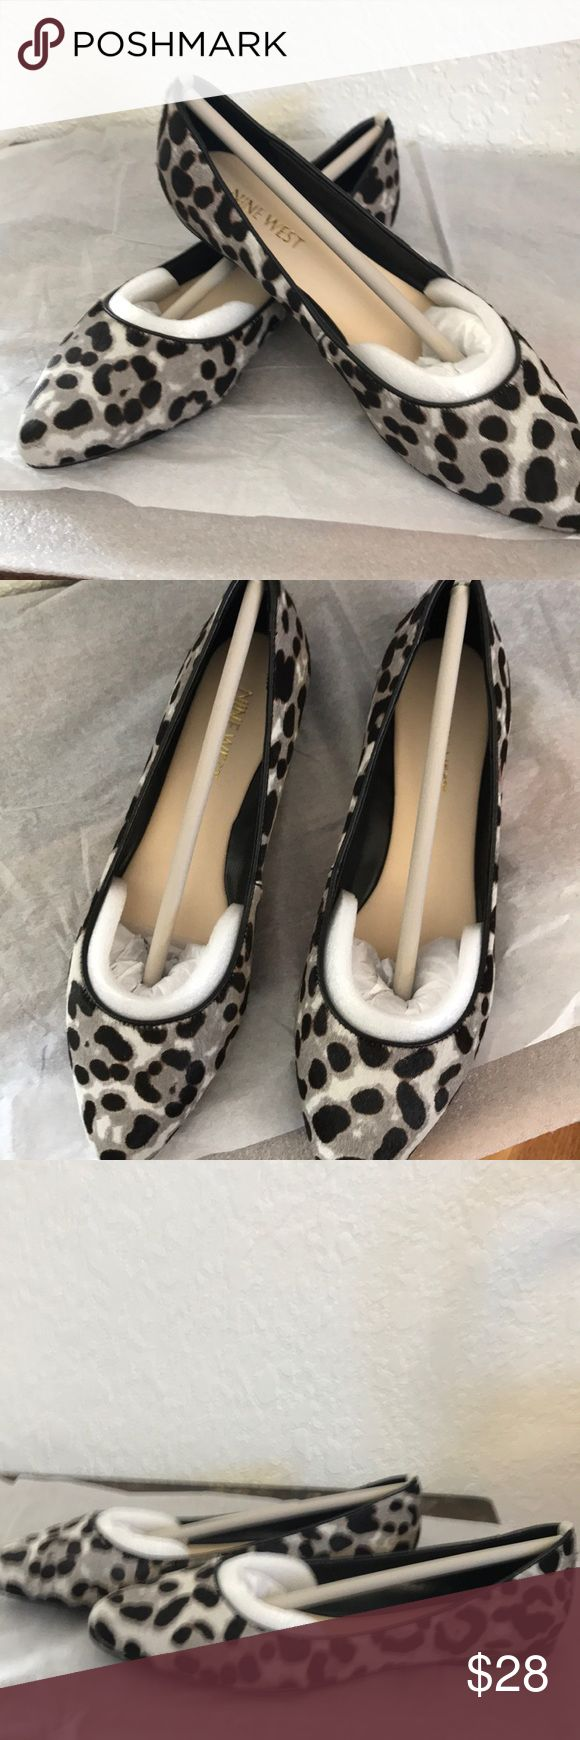 Real cow fur Nine West shoes. Brand new still in the box!!  Super cute flats! Nine West Shoes Flats & Loafers